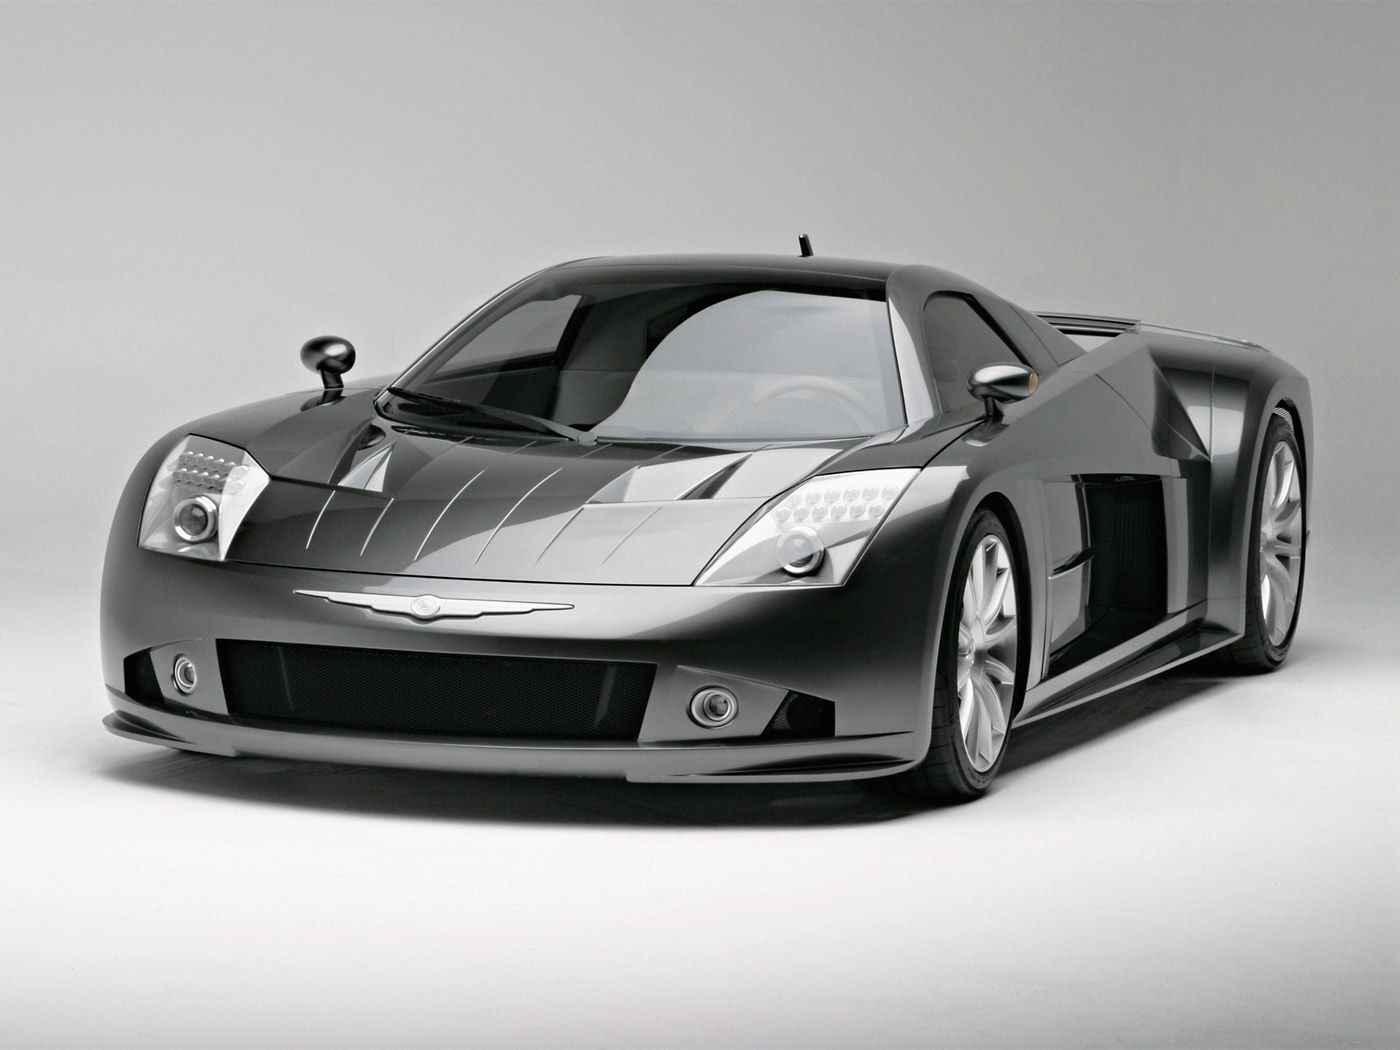 super car images |Cars Wallpapers And Pictures car images,car pics ...